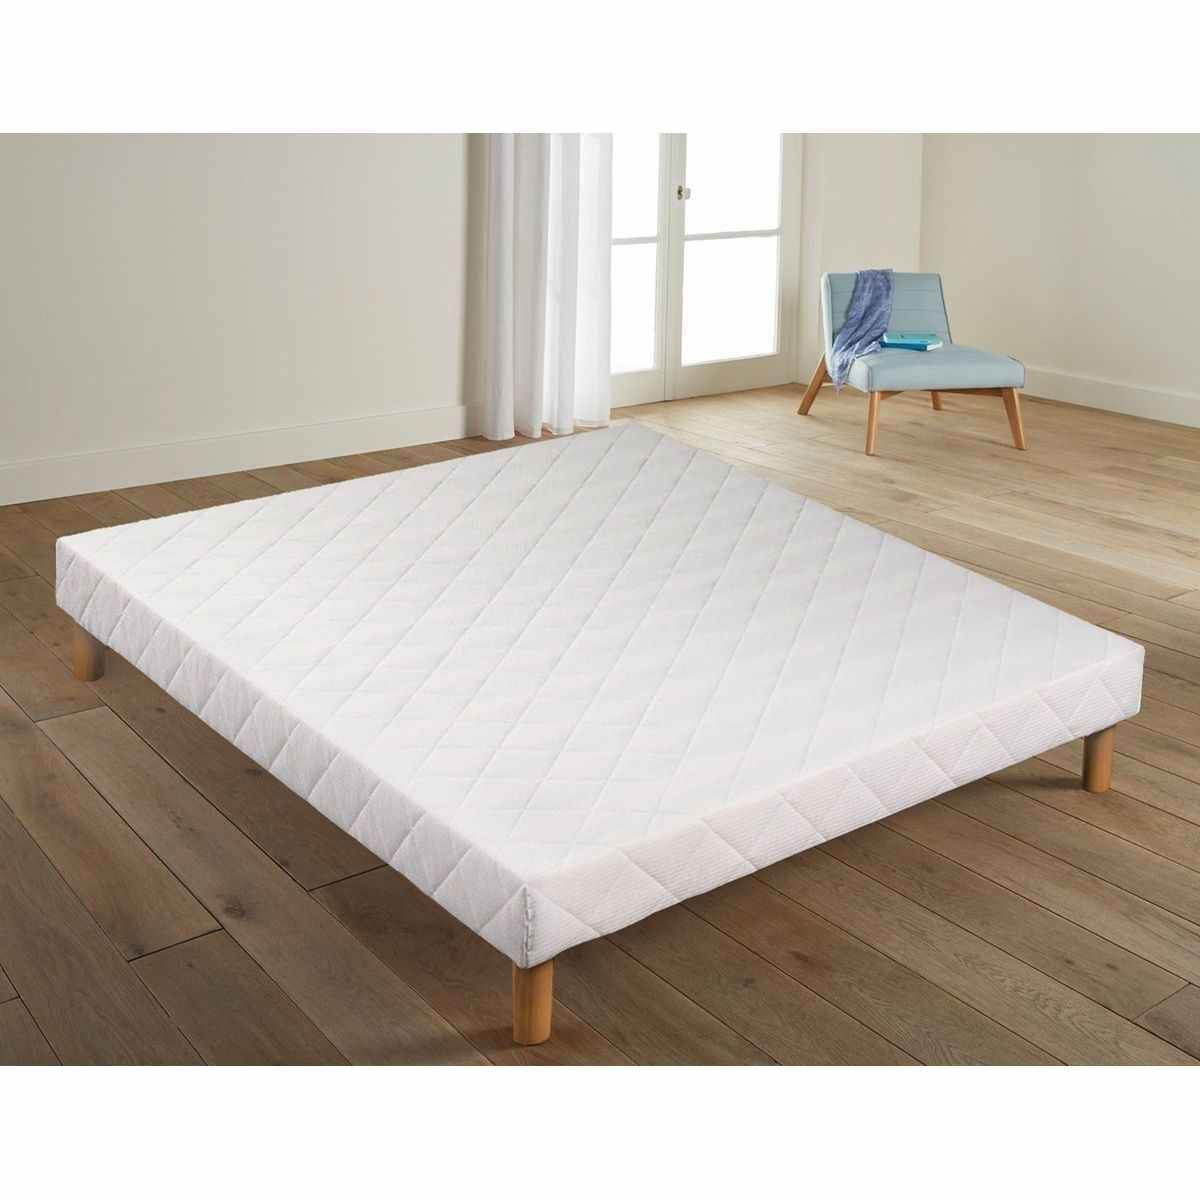 Sommier 4 Pieds Sommier Tapissier 160 X 200 Cm 4 Pieds